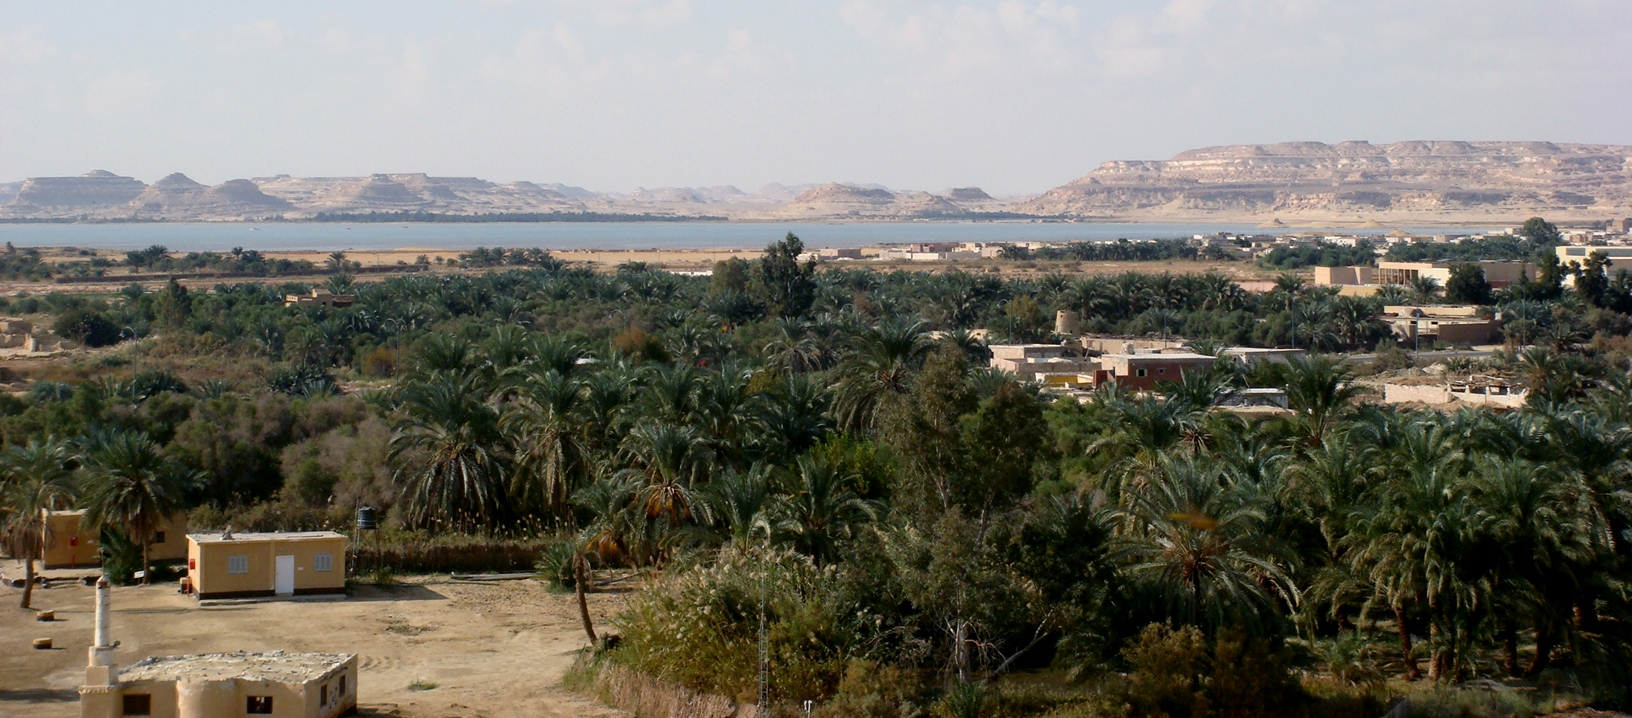 the Siwa oasis, Egypt